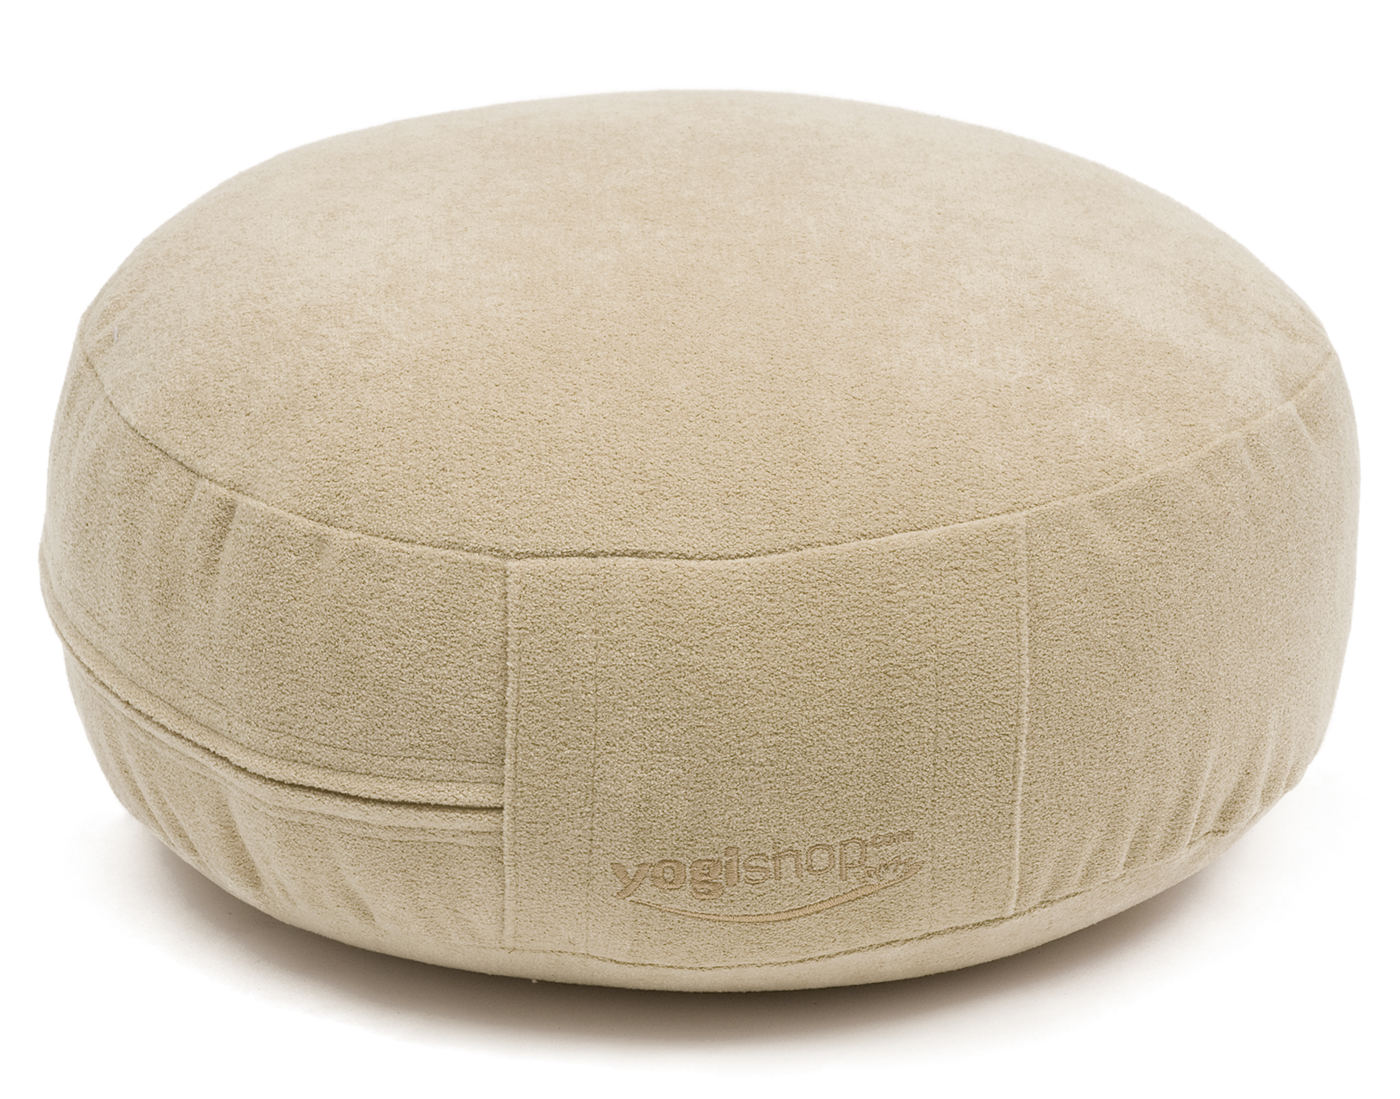 Meditation cushion 'BASICS', round